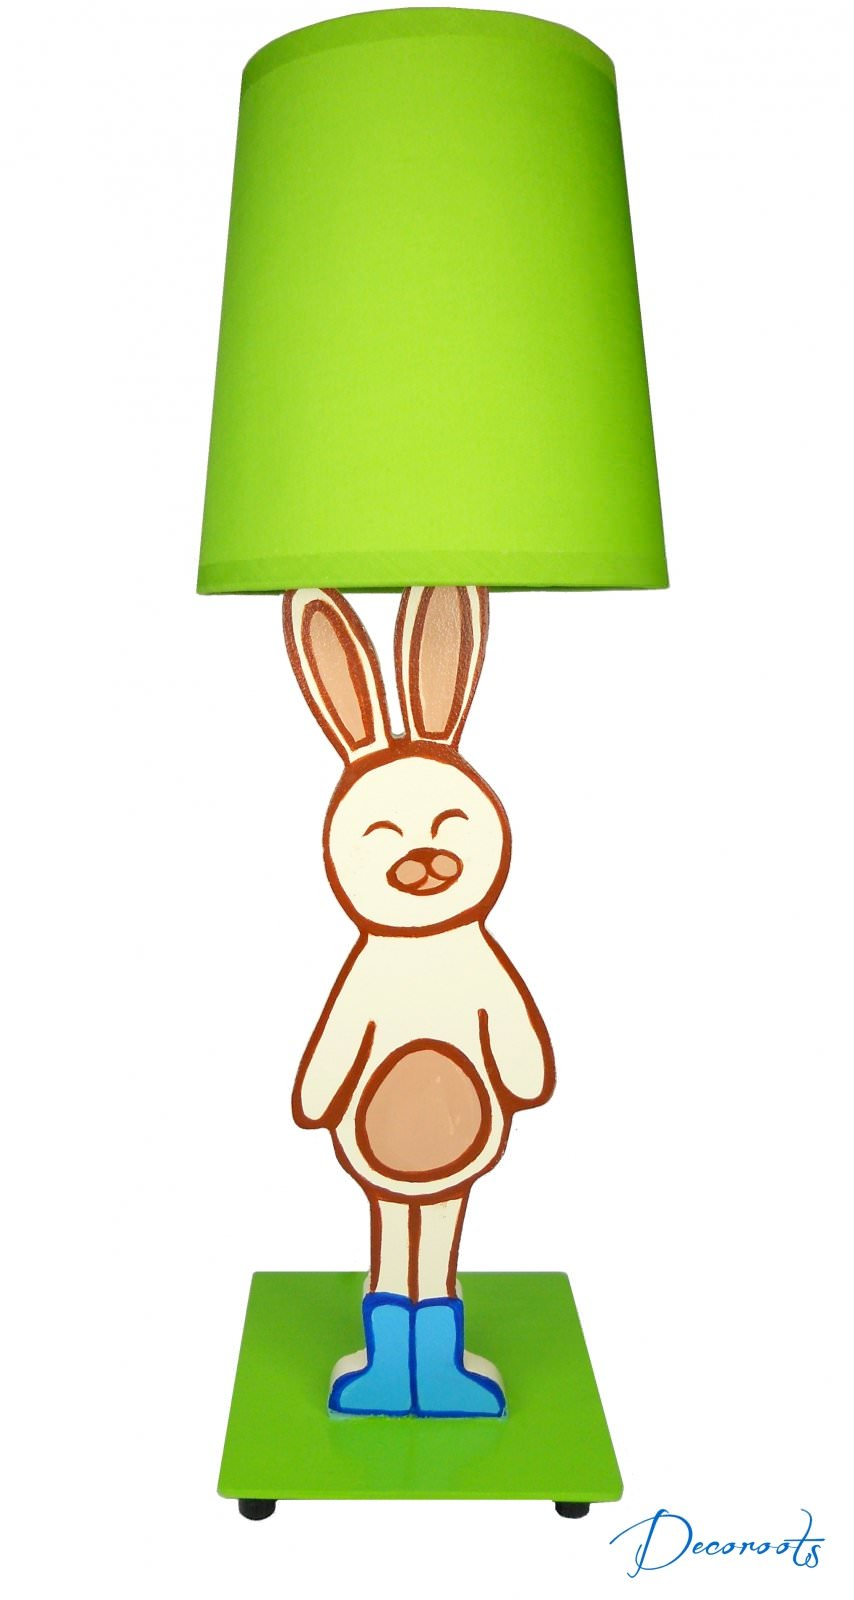 lampe de chevet lapin gar on existe en bleu enfant b b luminaire enfant b b decoroots. Black Bedroom Furniture Sets. Home Design Ideas